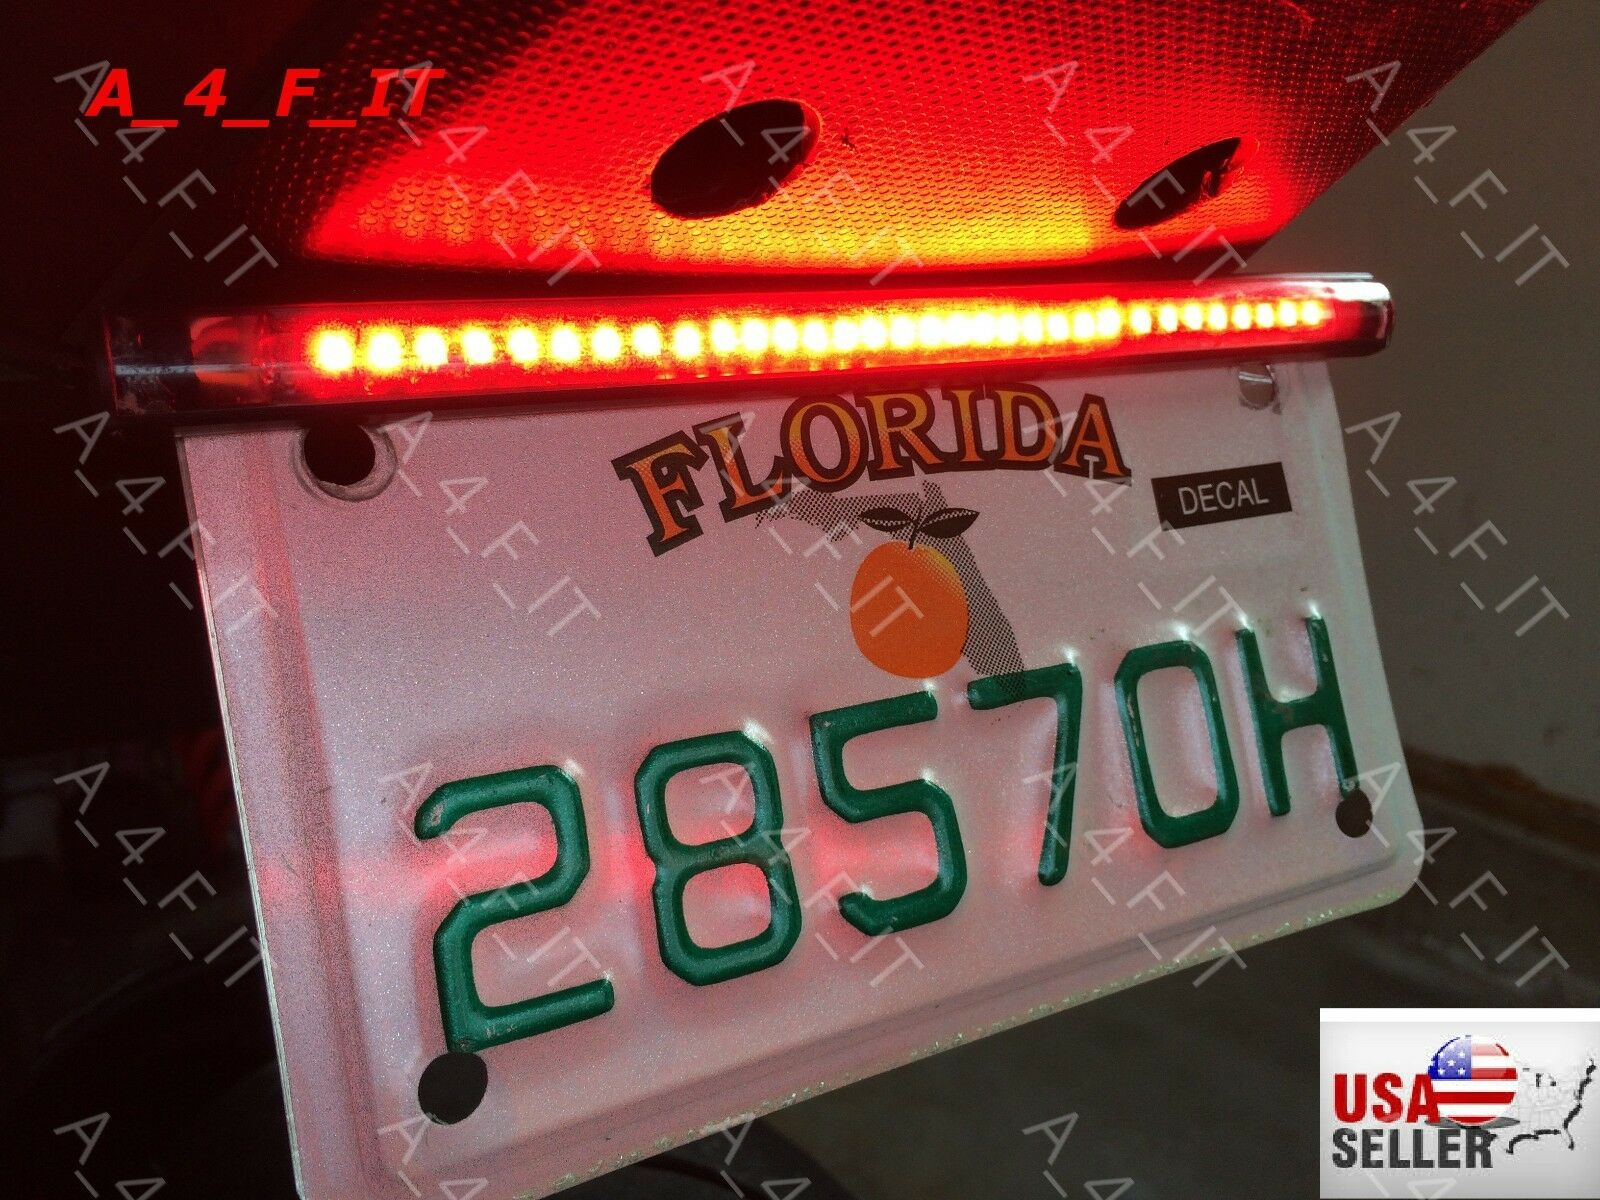 Harley Davidson Led Integrated Fender Brake Tail Light Turn Signal Trouble Help With Wires Page 2 Bar Usa Hd 1 Of 6only Available